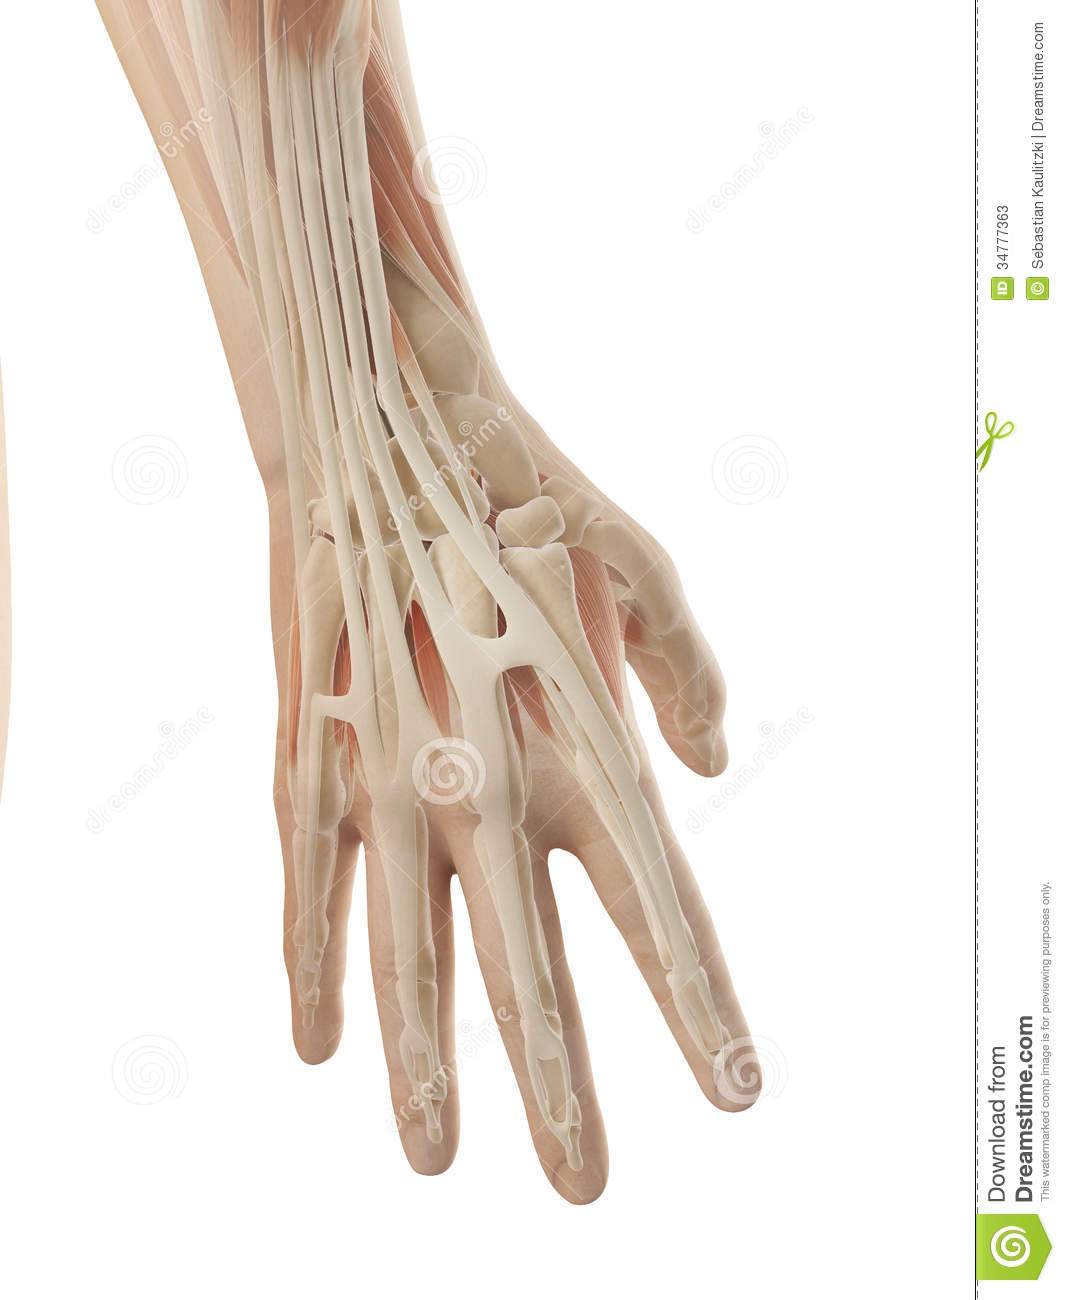 Human Hand Anatomy Stock Illustration Illustration Of Health 34777363